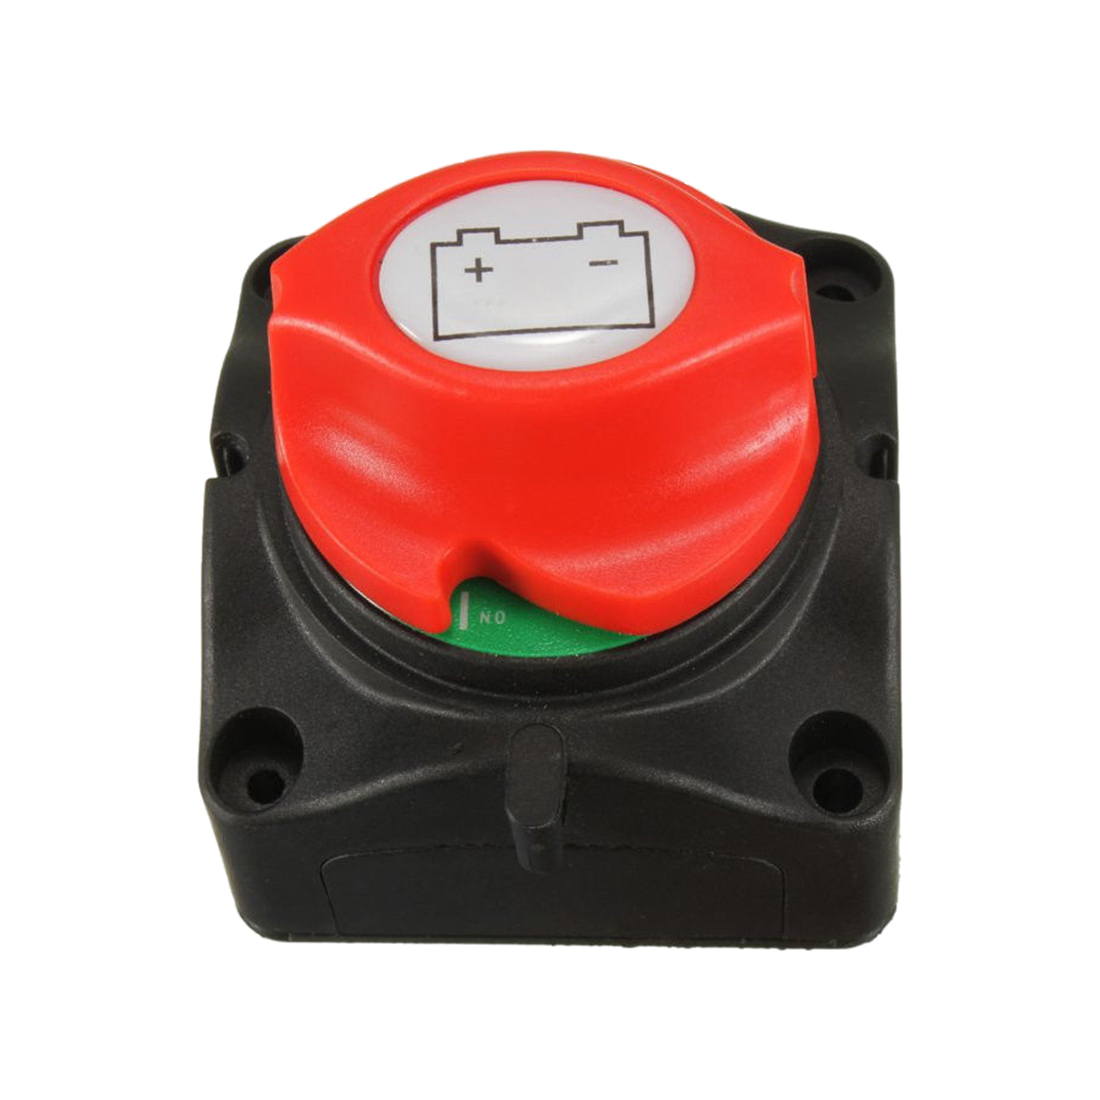 AUTO -Removable Knob Marine Battery Isolator Cut Off Kill Switch Boat 12V/24V/48V image